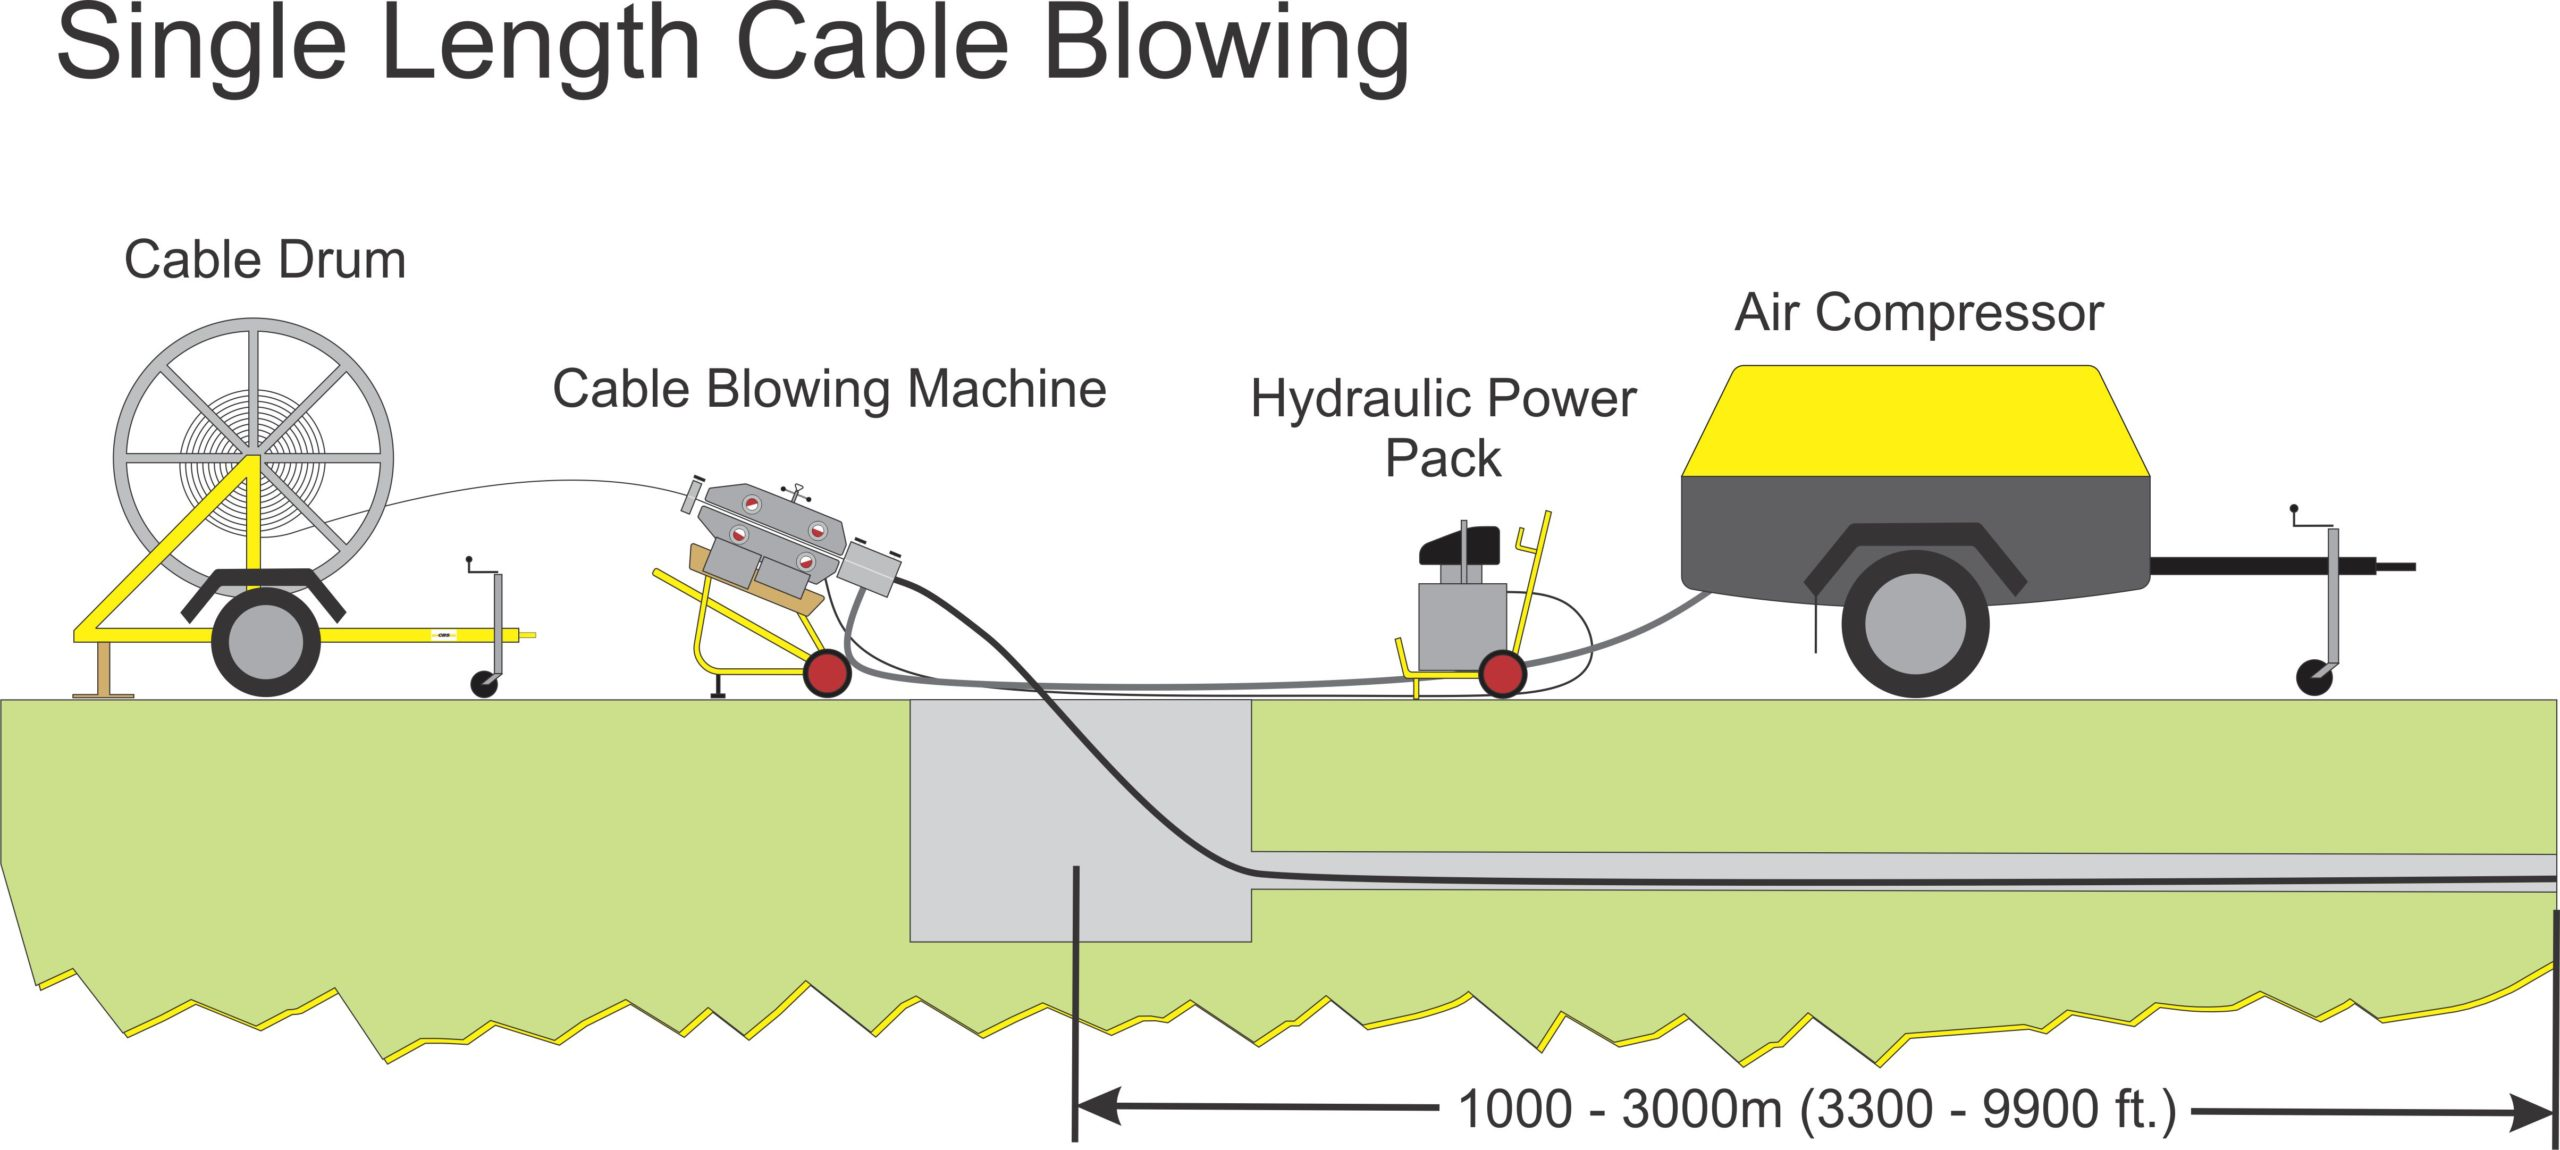 Single Length Cable Blowing